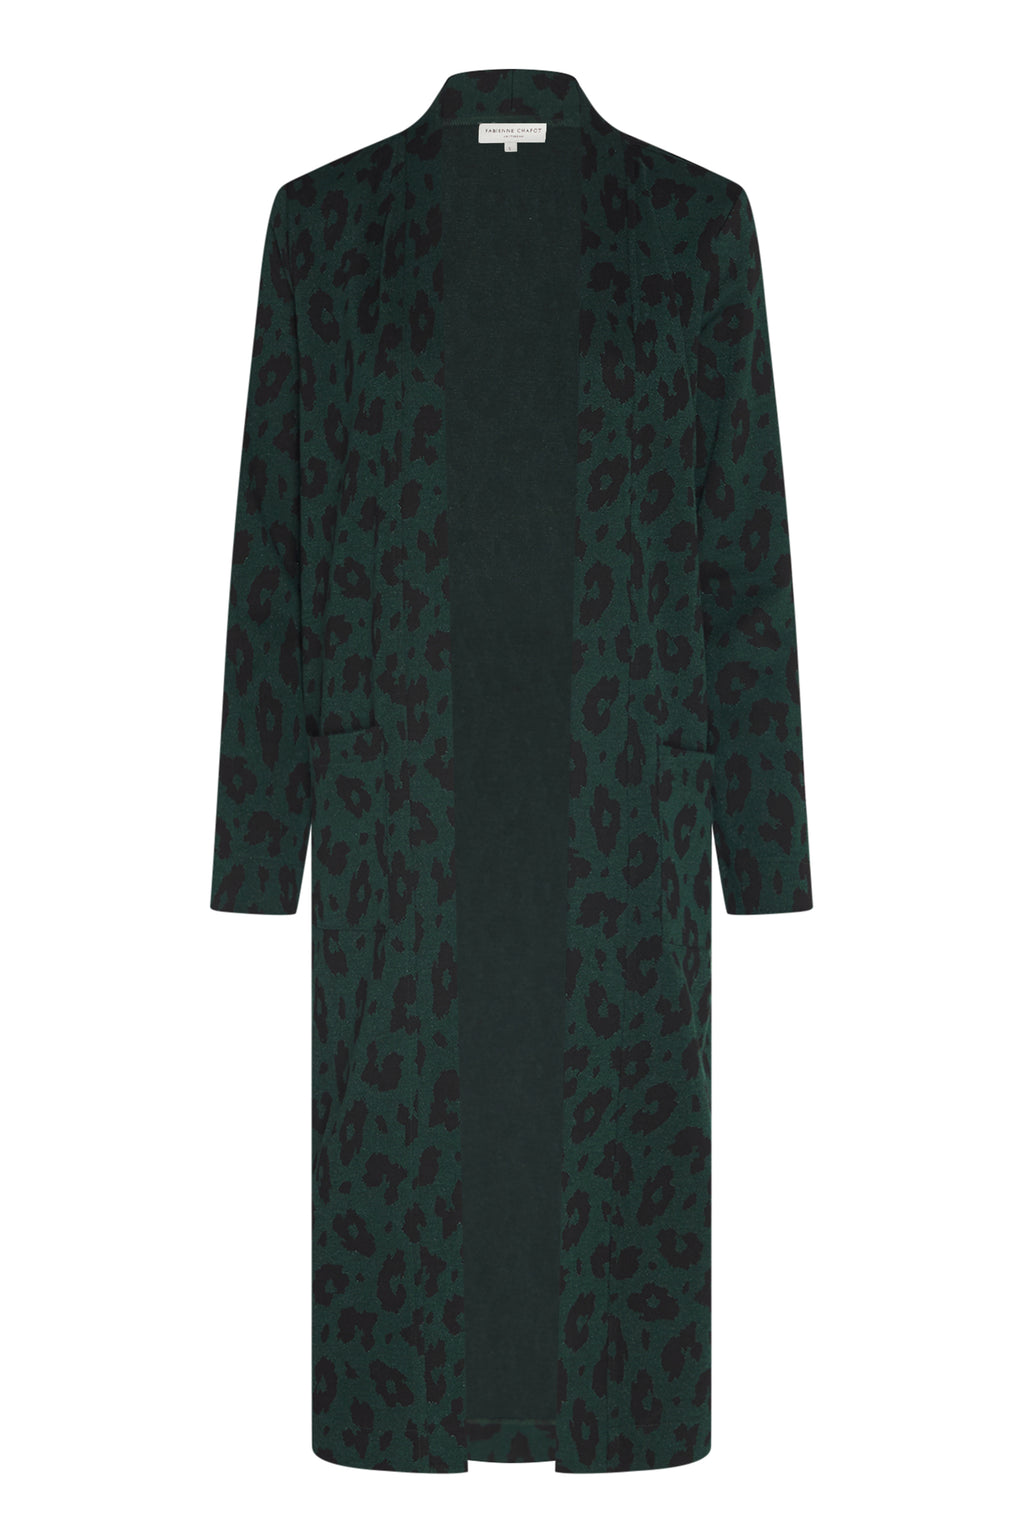 Fabienne Chapot Phene Long Cardigan - Green Leopard